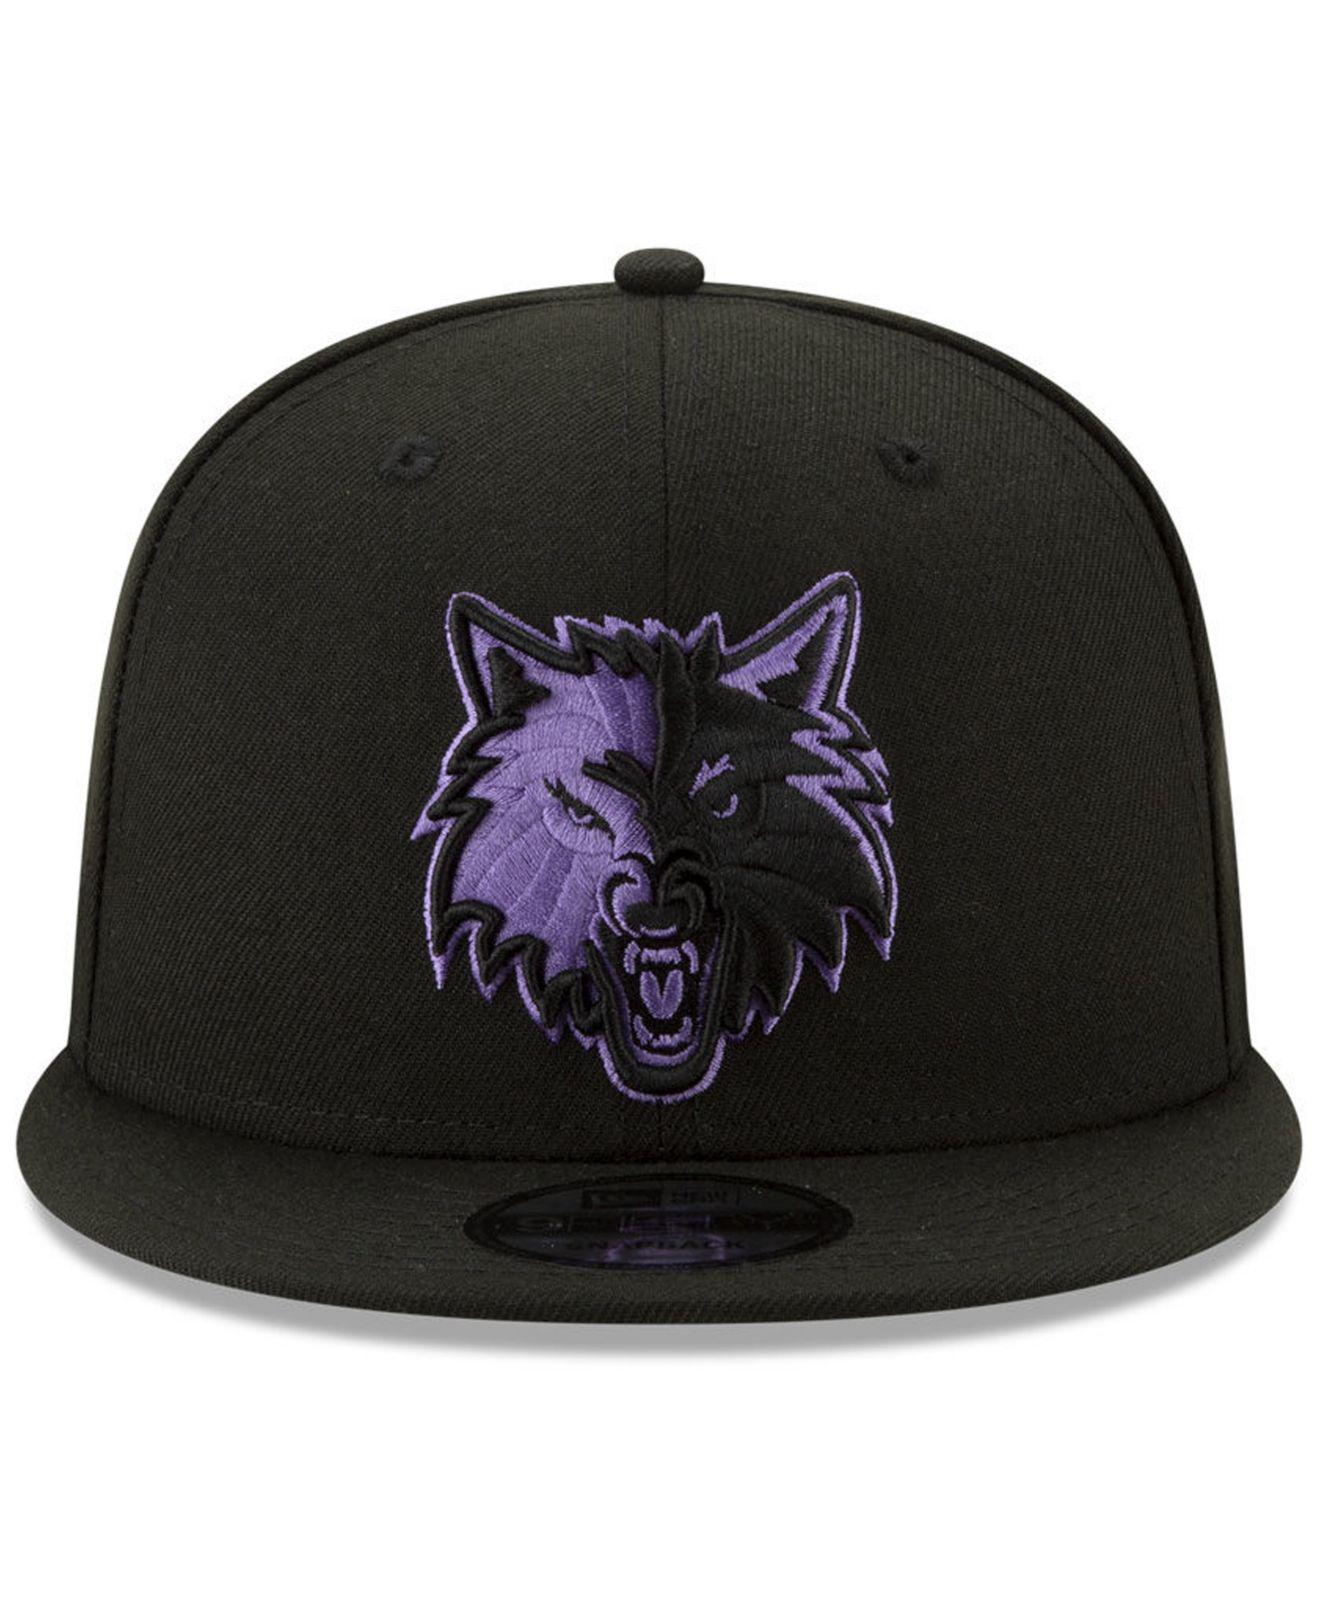 7bd57898f ... shopping lyst ktz minnesota timberwolves city pop series 9fifty  snapback cap in black for men 7b454